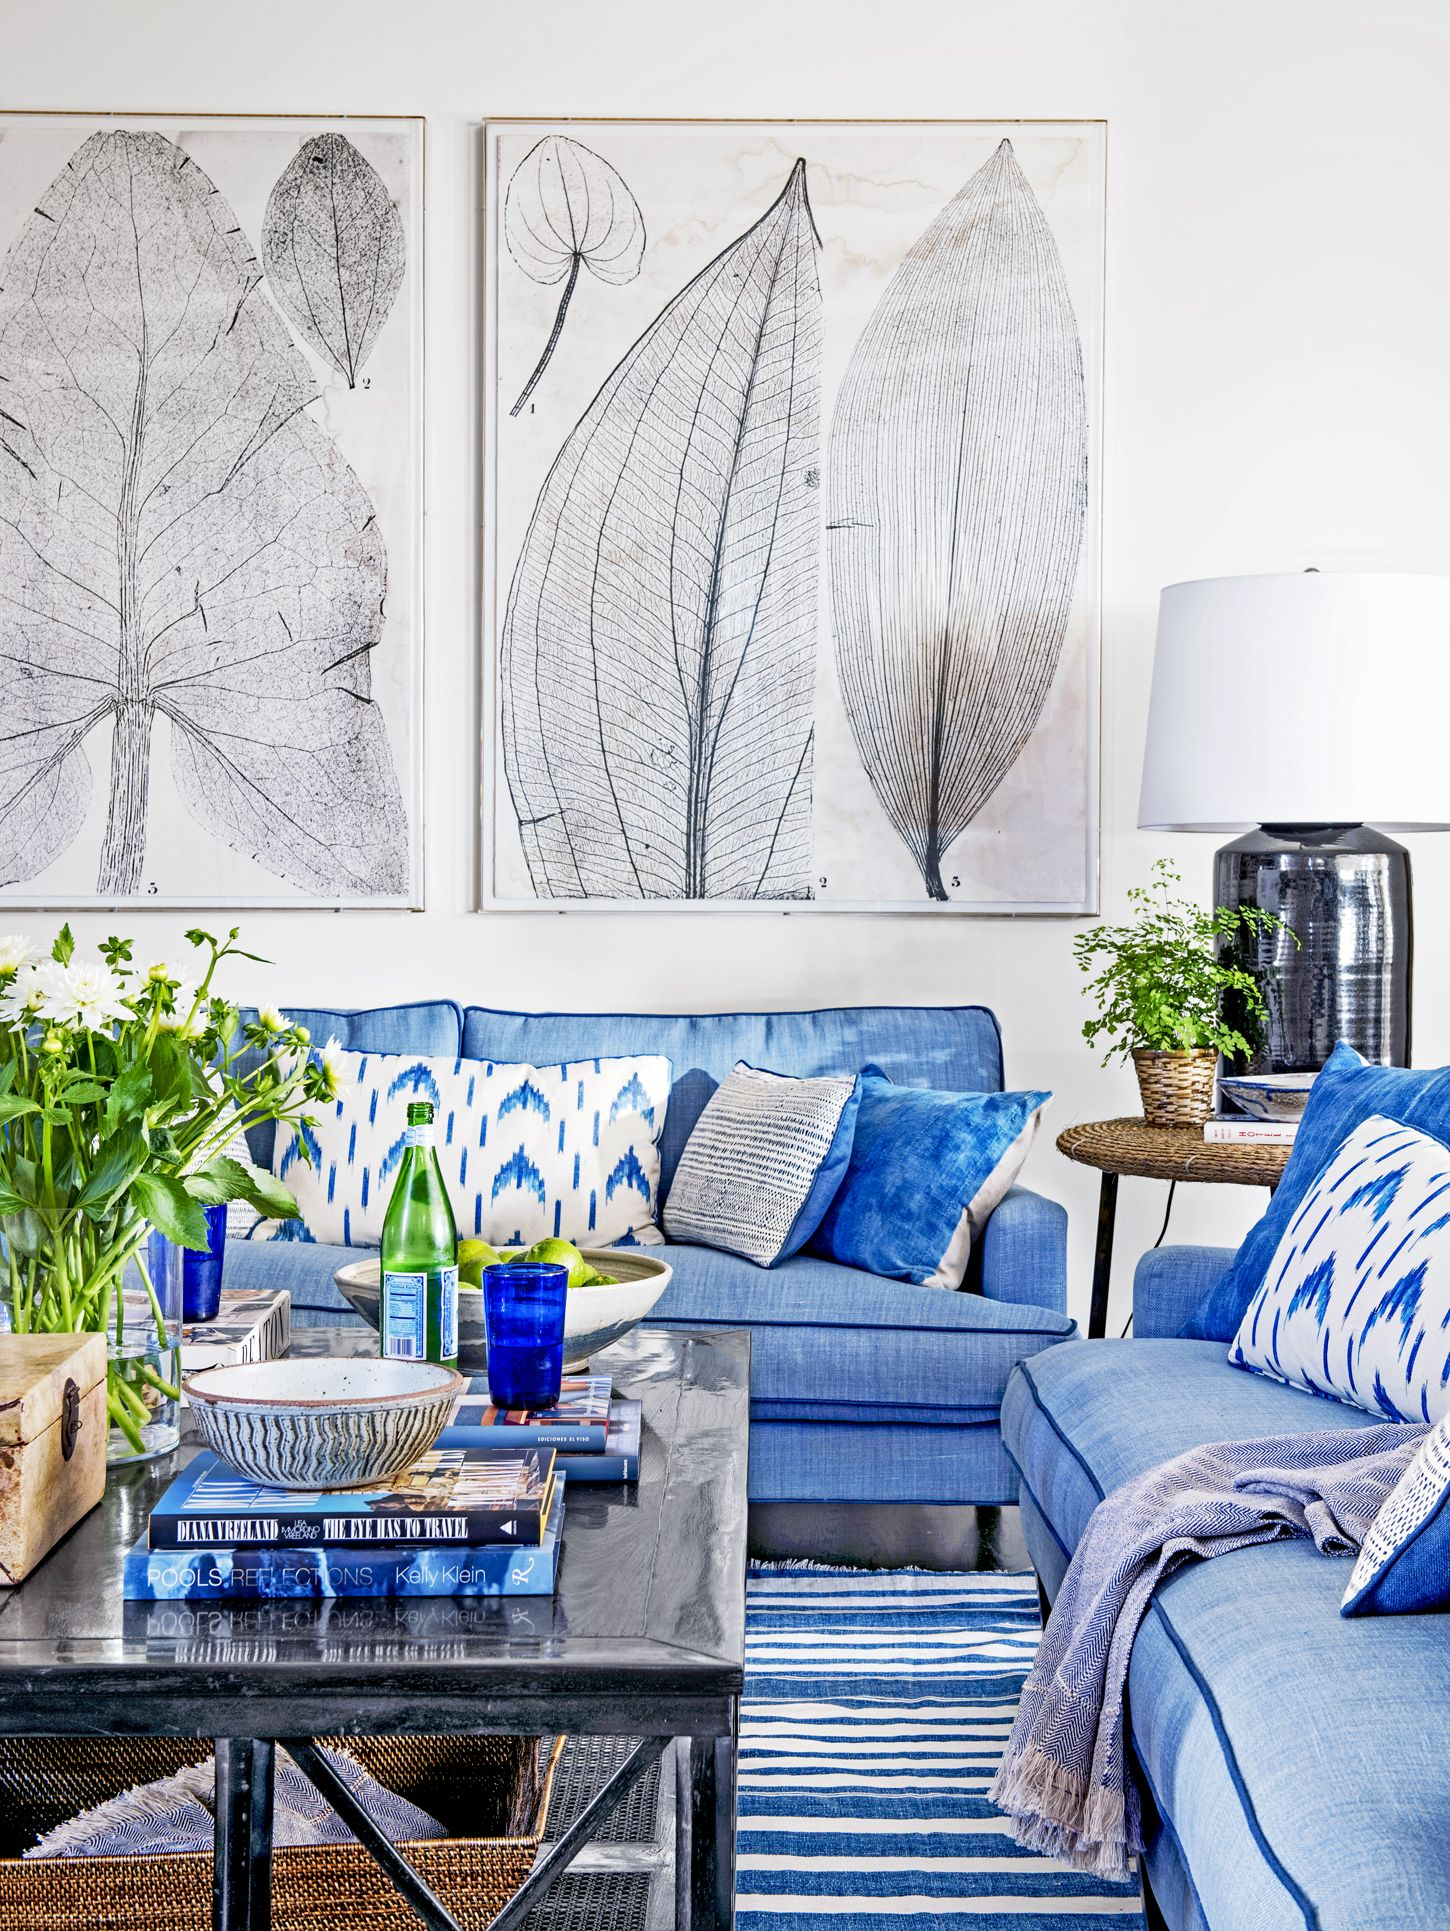 Ordinaire 15 Rules For Decorating With Blue And White